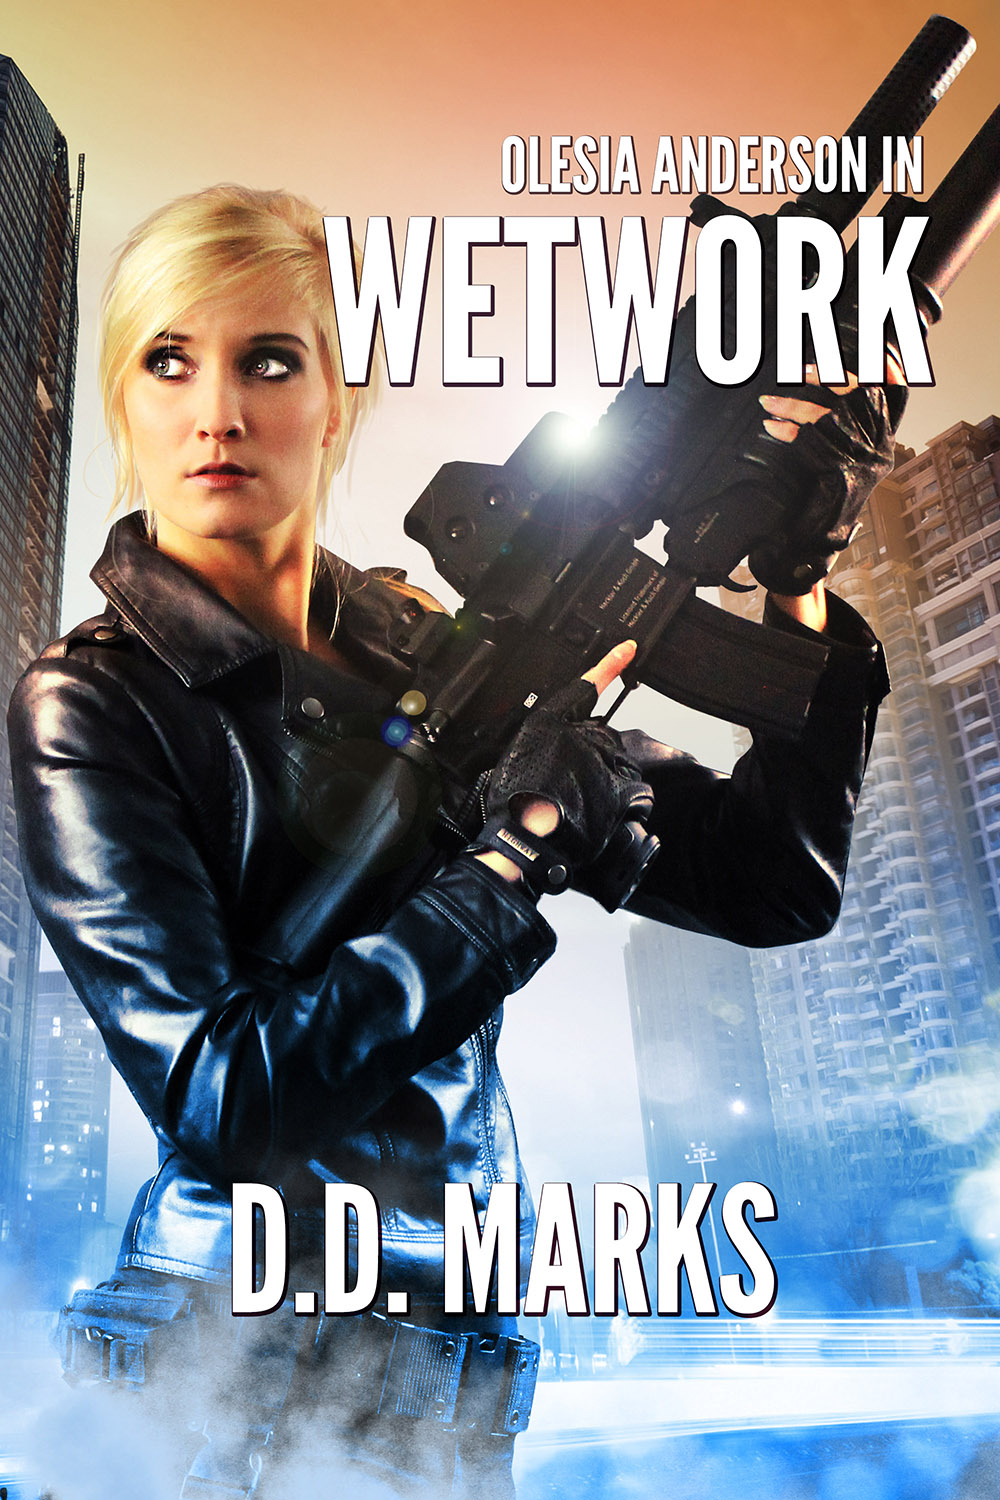 Link to Olesia Anderson 8: Wetwork by Christopher Ruz writing as D.D Marks